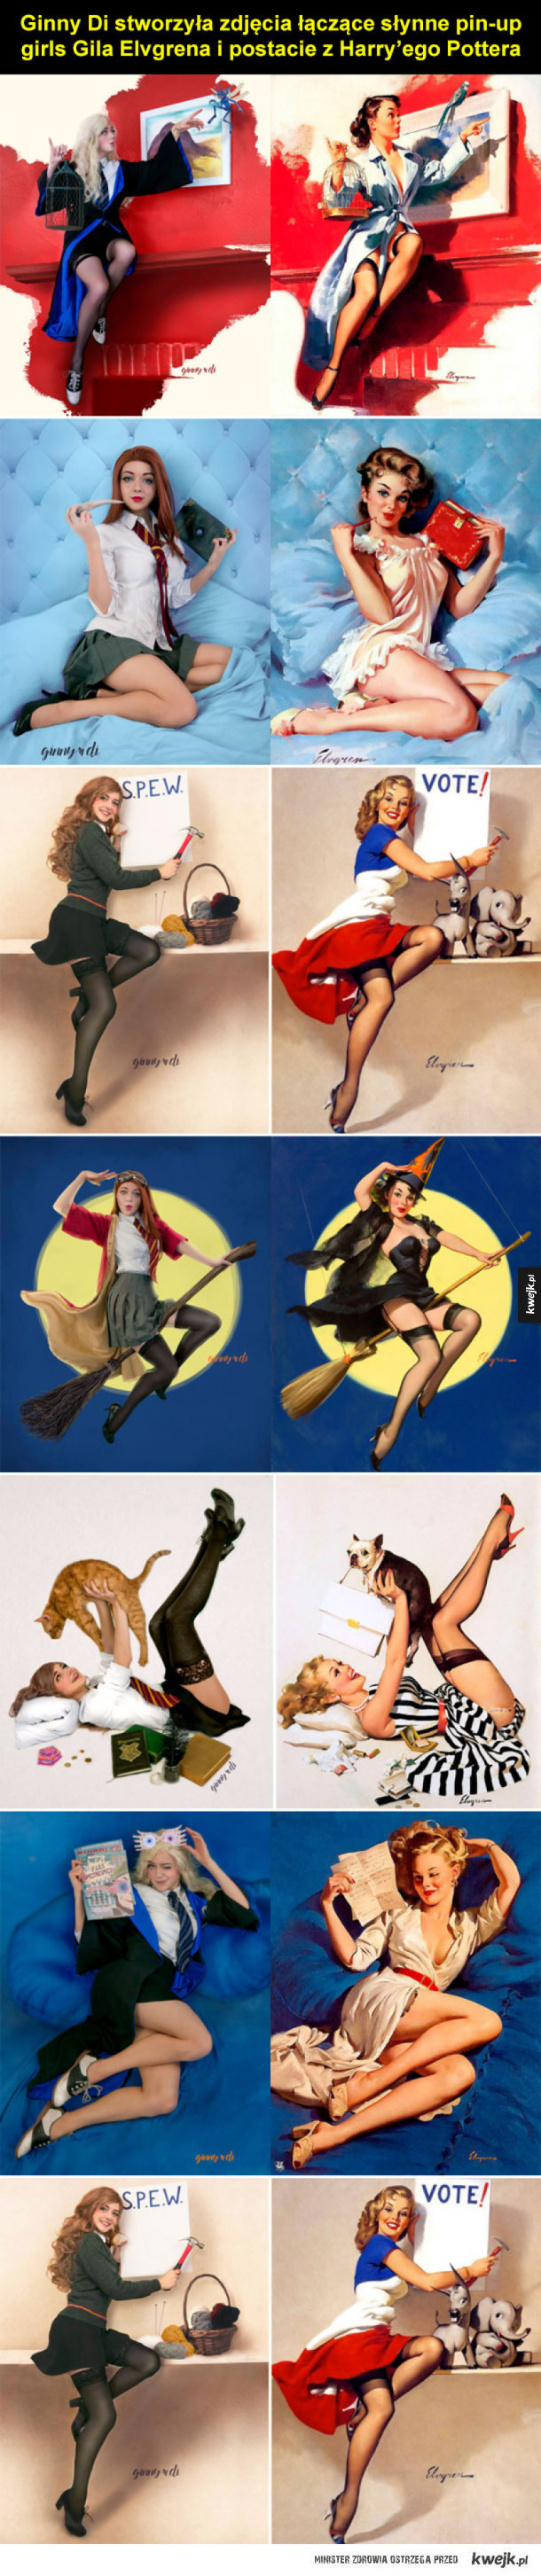 Pin-up girls z Harry'ego Pottera